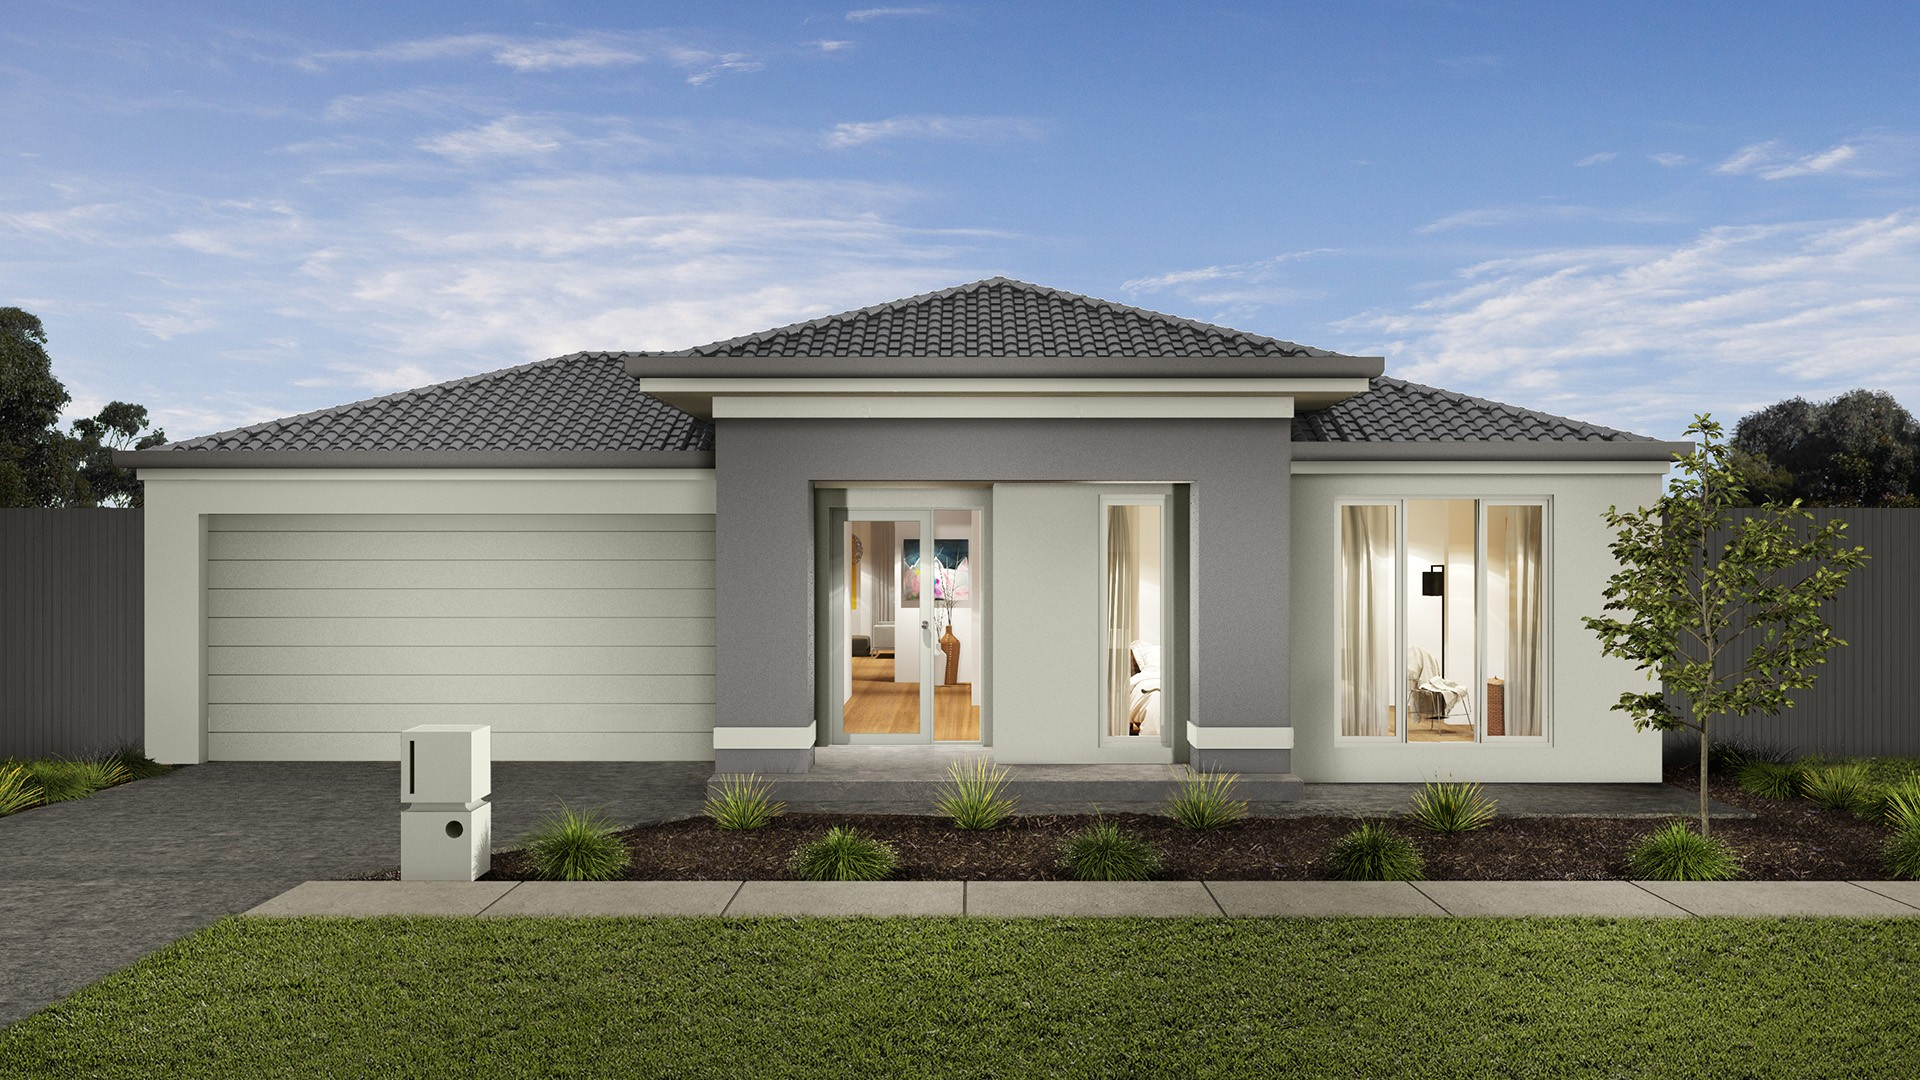 EASYLIVING ARCADIA HEBEL NAPELS 14 Exterior Image 2